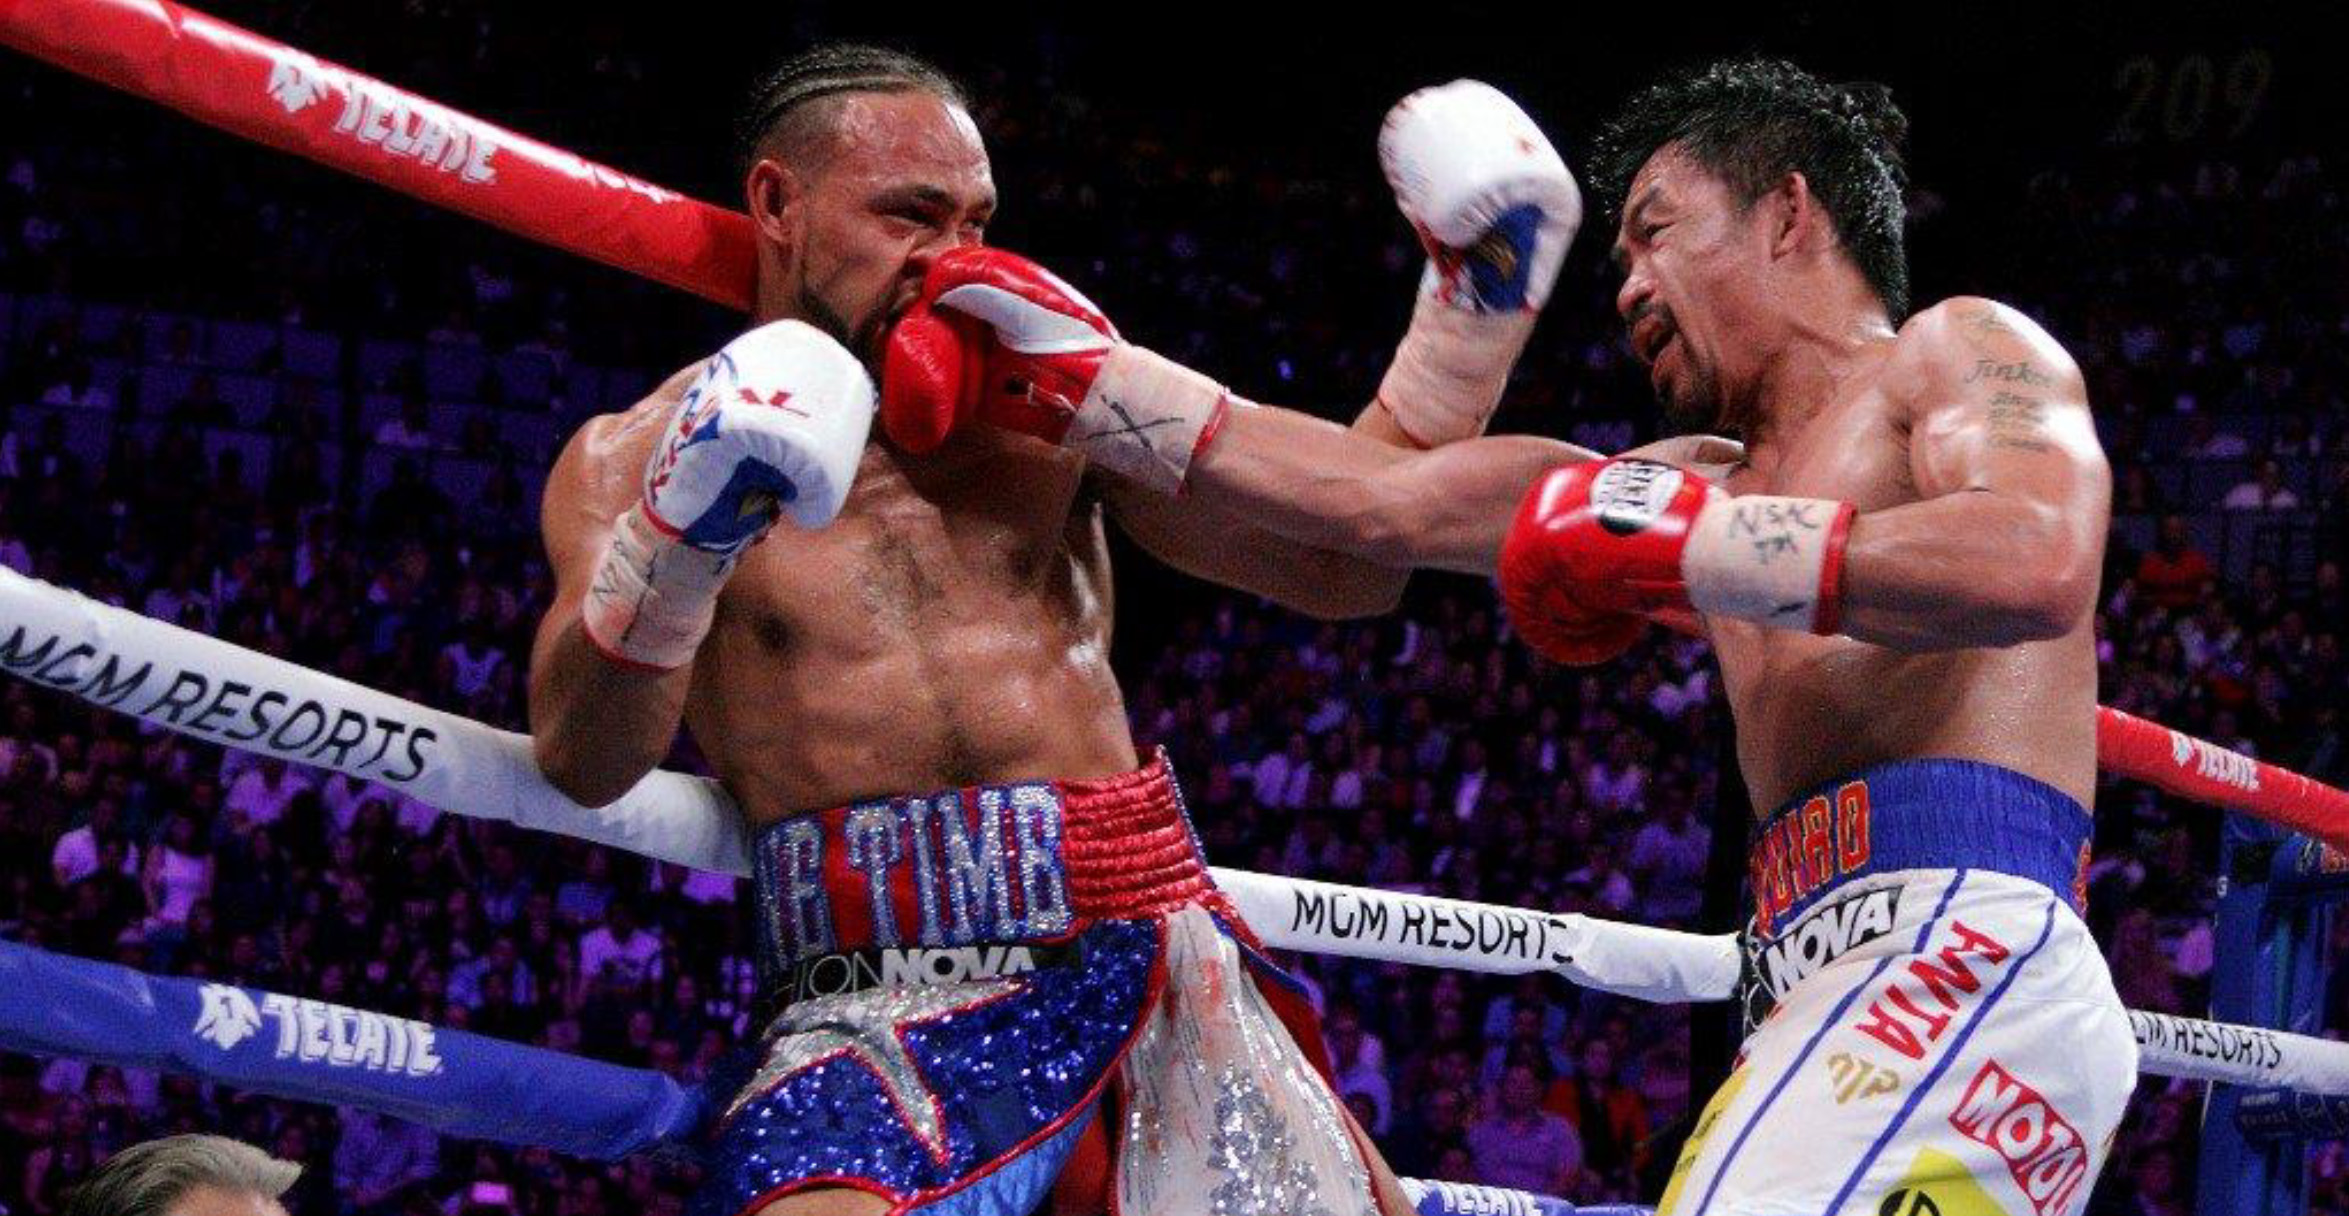 South paw Manny Pacquiao drives a devastating right to the face of undefeated Keith Thurman during their WBA super world welterweight title fight at the MGM Grand Garden Arena on Saturday, July 20, 2019 in Las Vegas, Nevada. ━ The Filipino 8-division champion won by a 12 round split decision. (Photo by John Gurzinski / AFP)